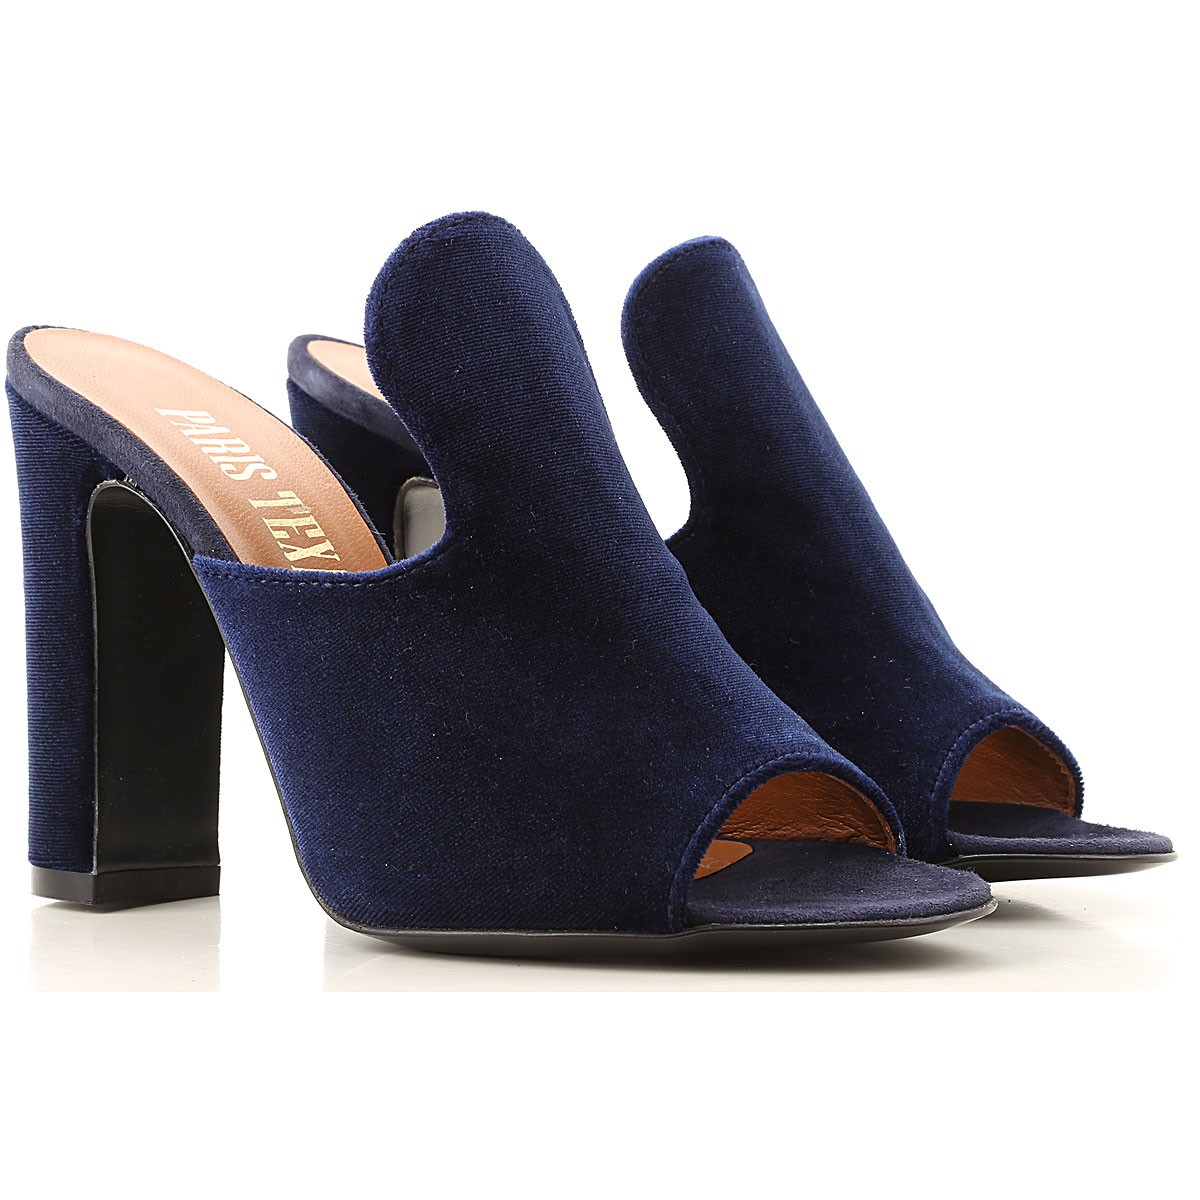 Paris Texas Sandals for Women On Sale in Outlet, Blue, Leather, 2019, 11 6 7 8 8.5